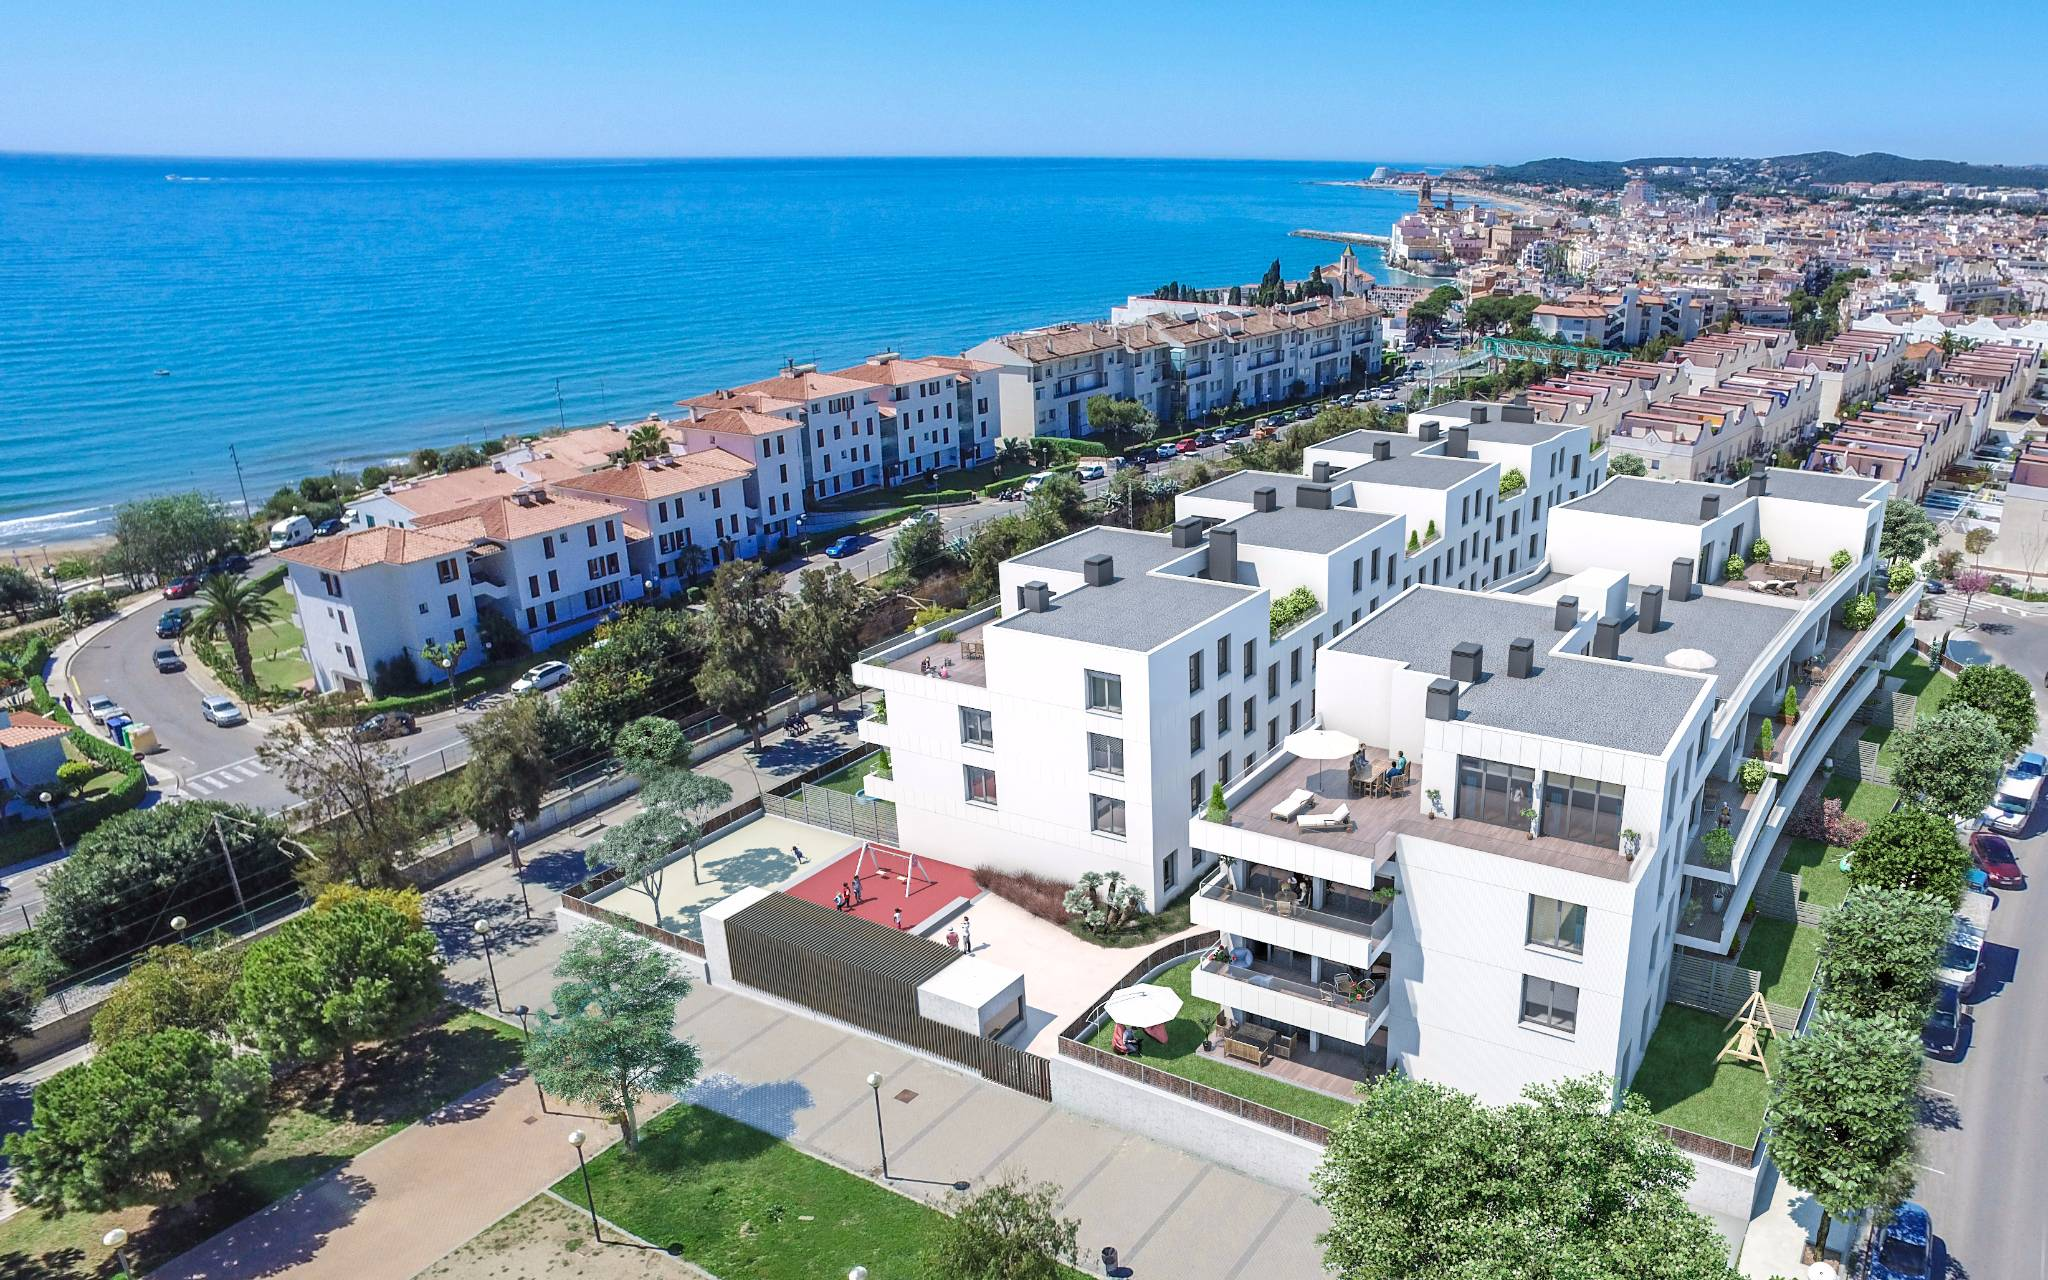 Render of one of Neinor Homes developments on the Spanish coast